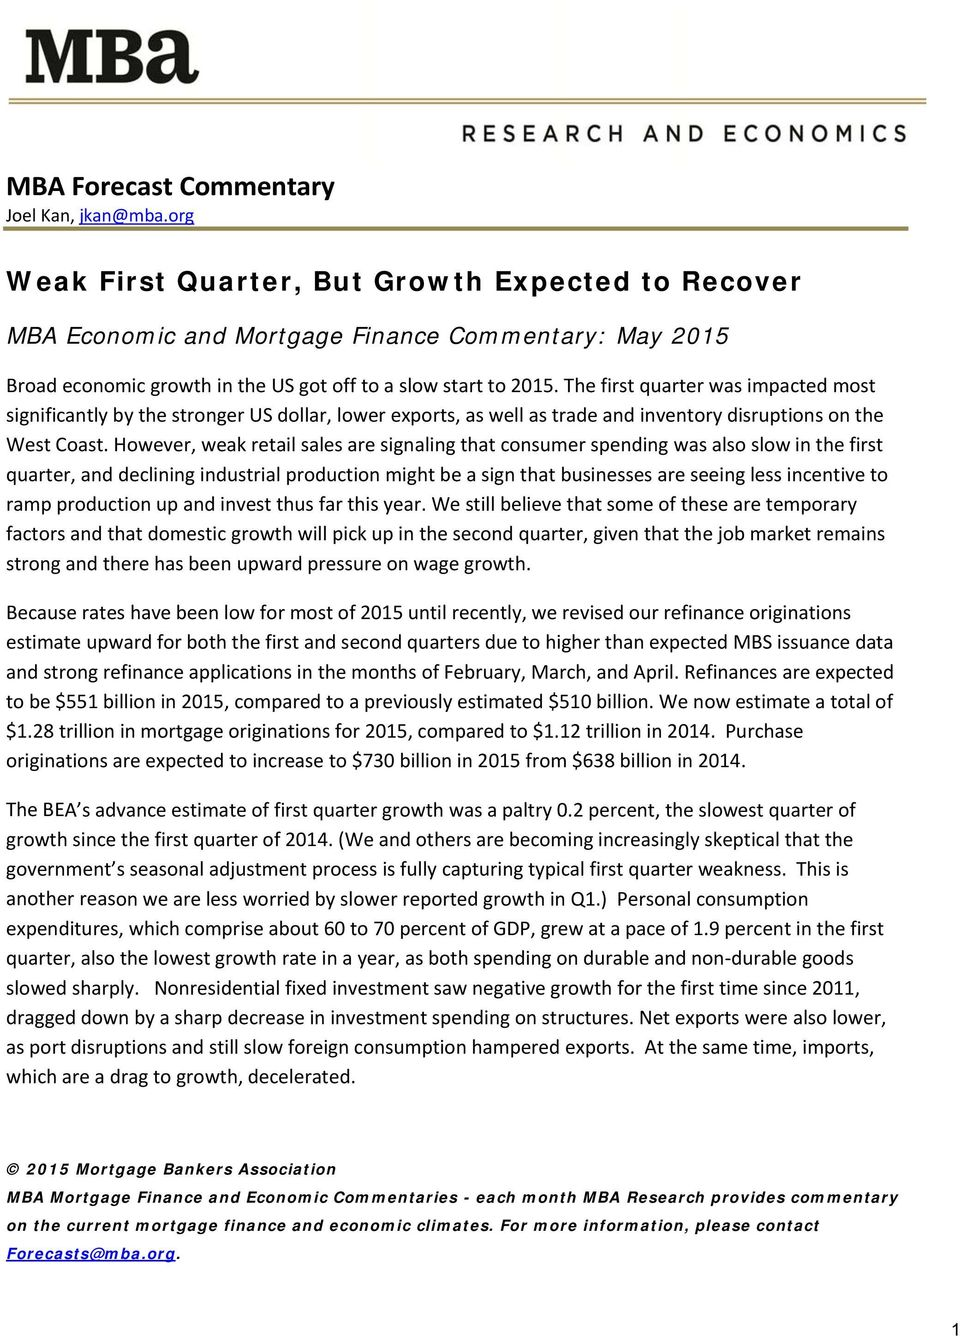 The first quarter was impacted most significantly by the stronger US dollar, lower exports, as well as trade and inventory disruptions on the West Coast.